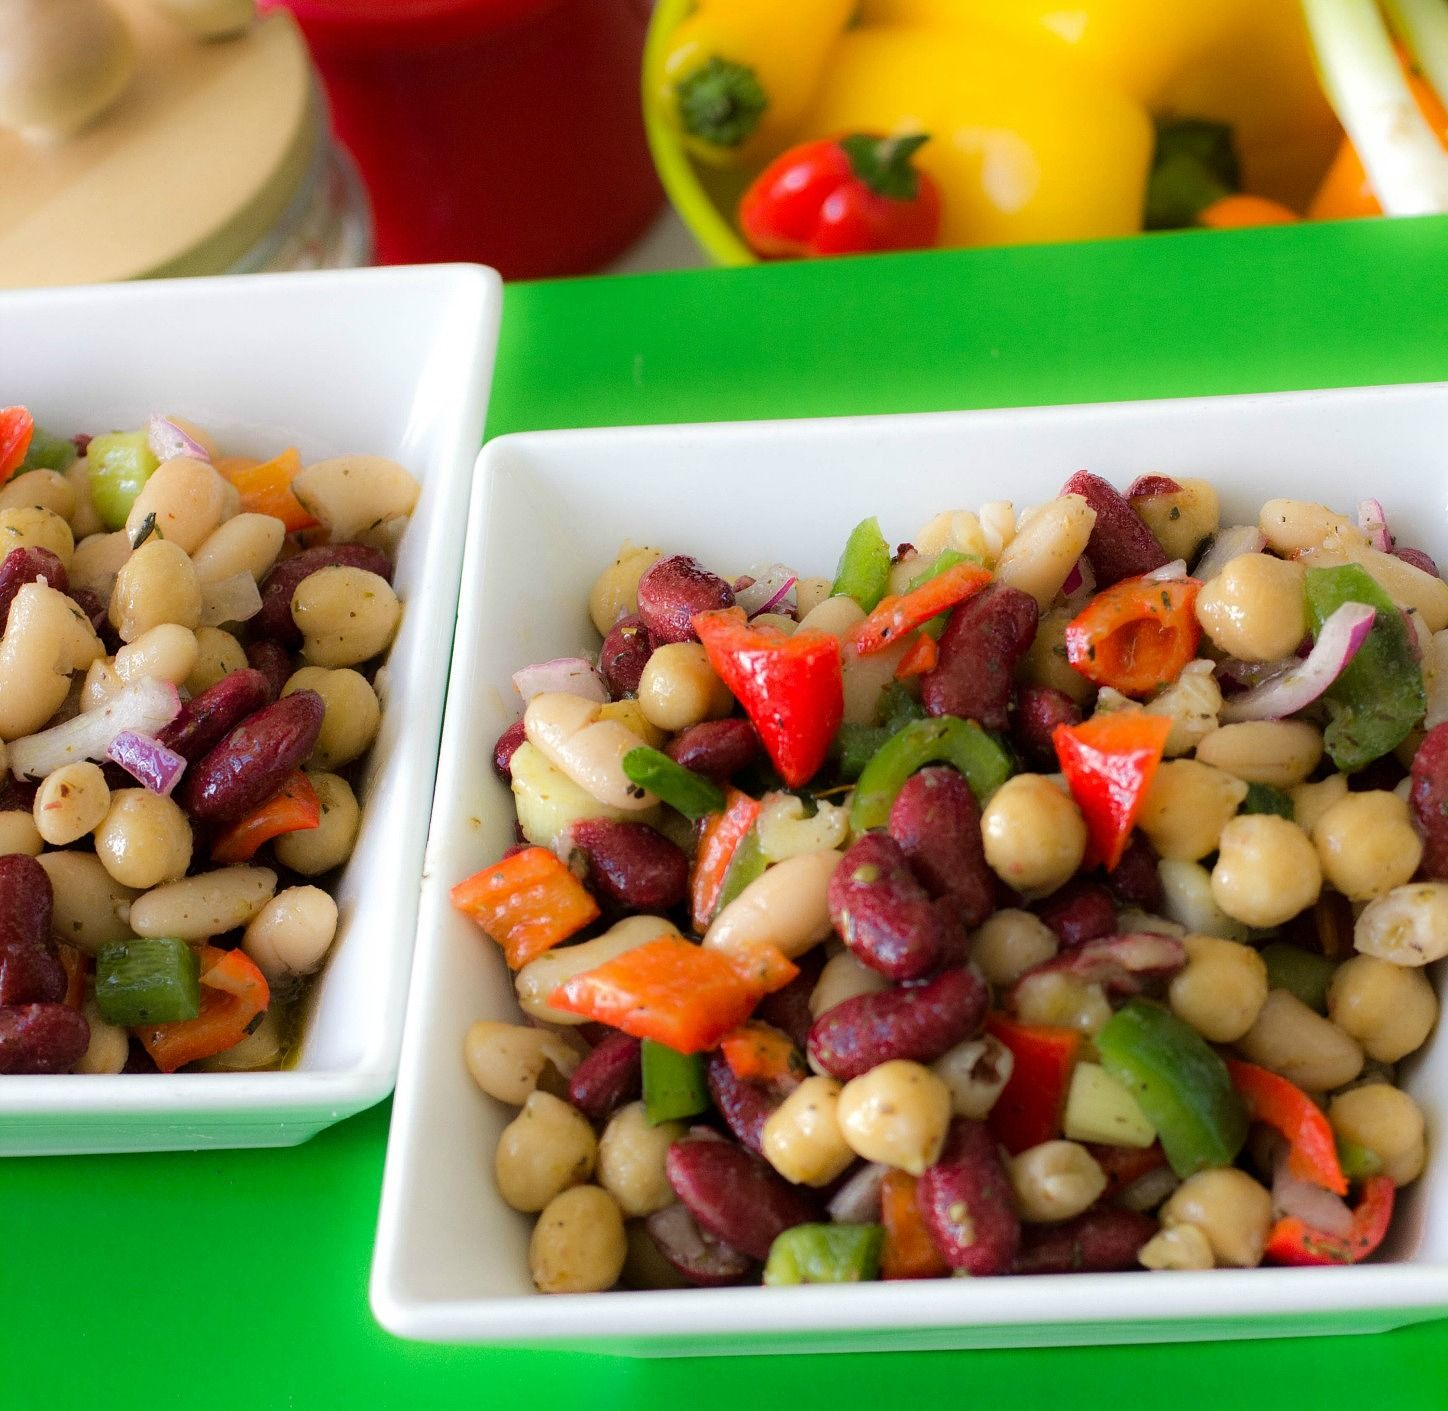 Quick Easy 3 Bean Salad Recipe With In 2020 Bean Salad Recipes Healthy Christmas Recipes Bean Salad Recipes Healthy